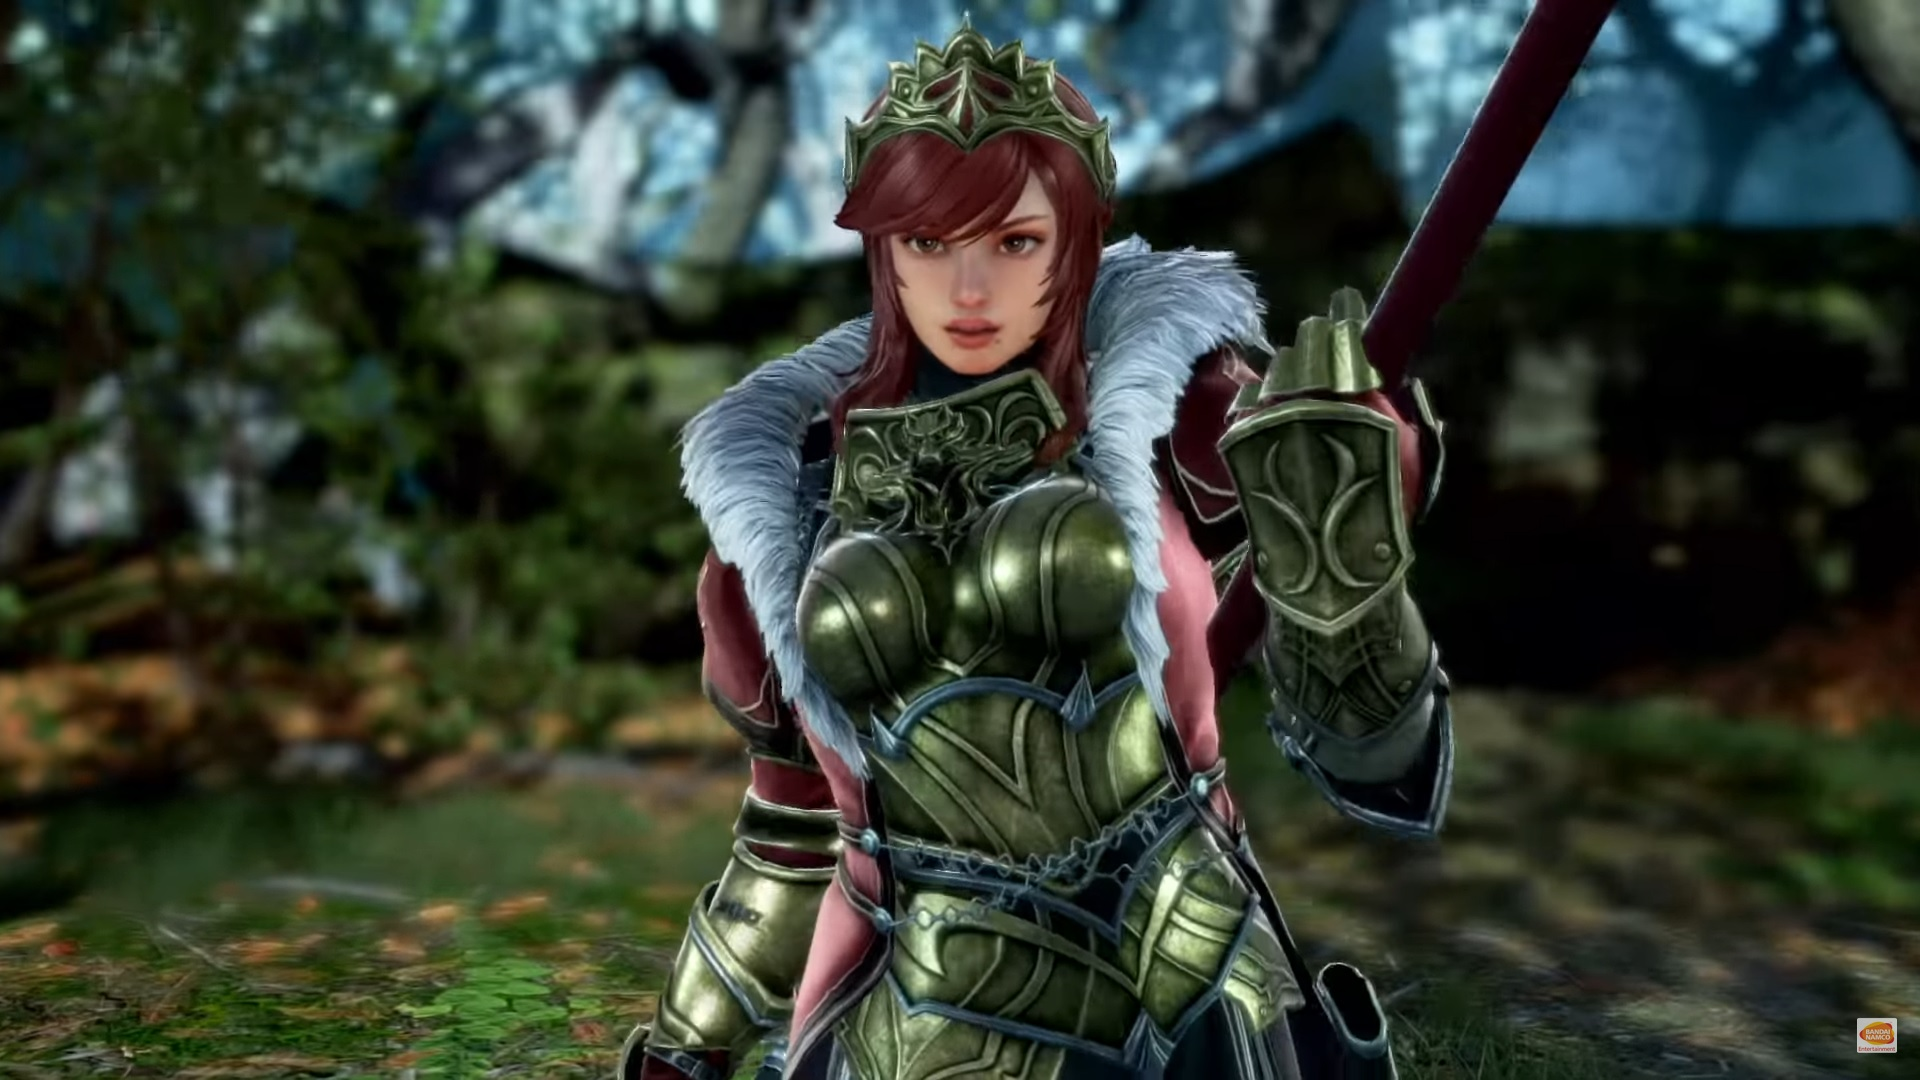 SoulCalibur 6: Hilde prepares to join the roster of wrestlers